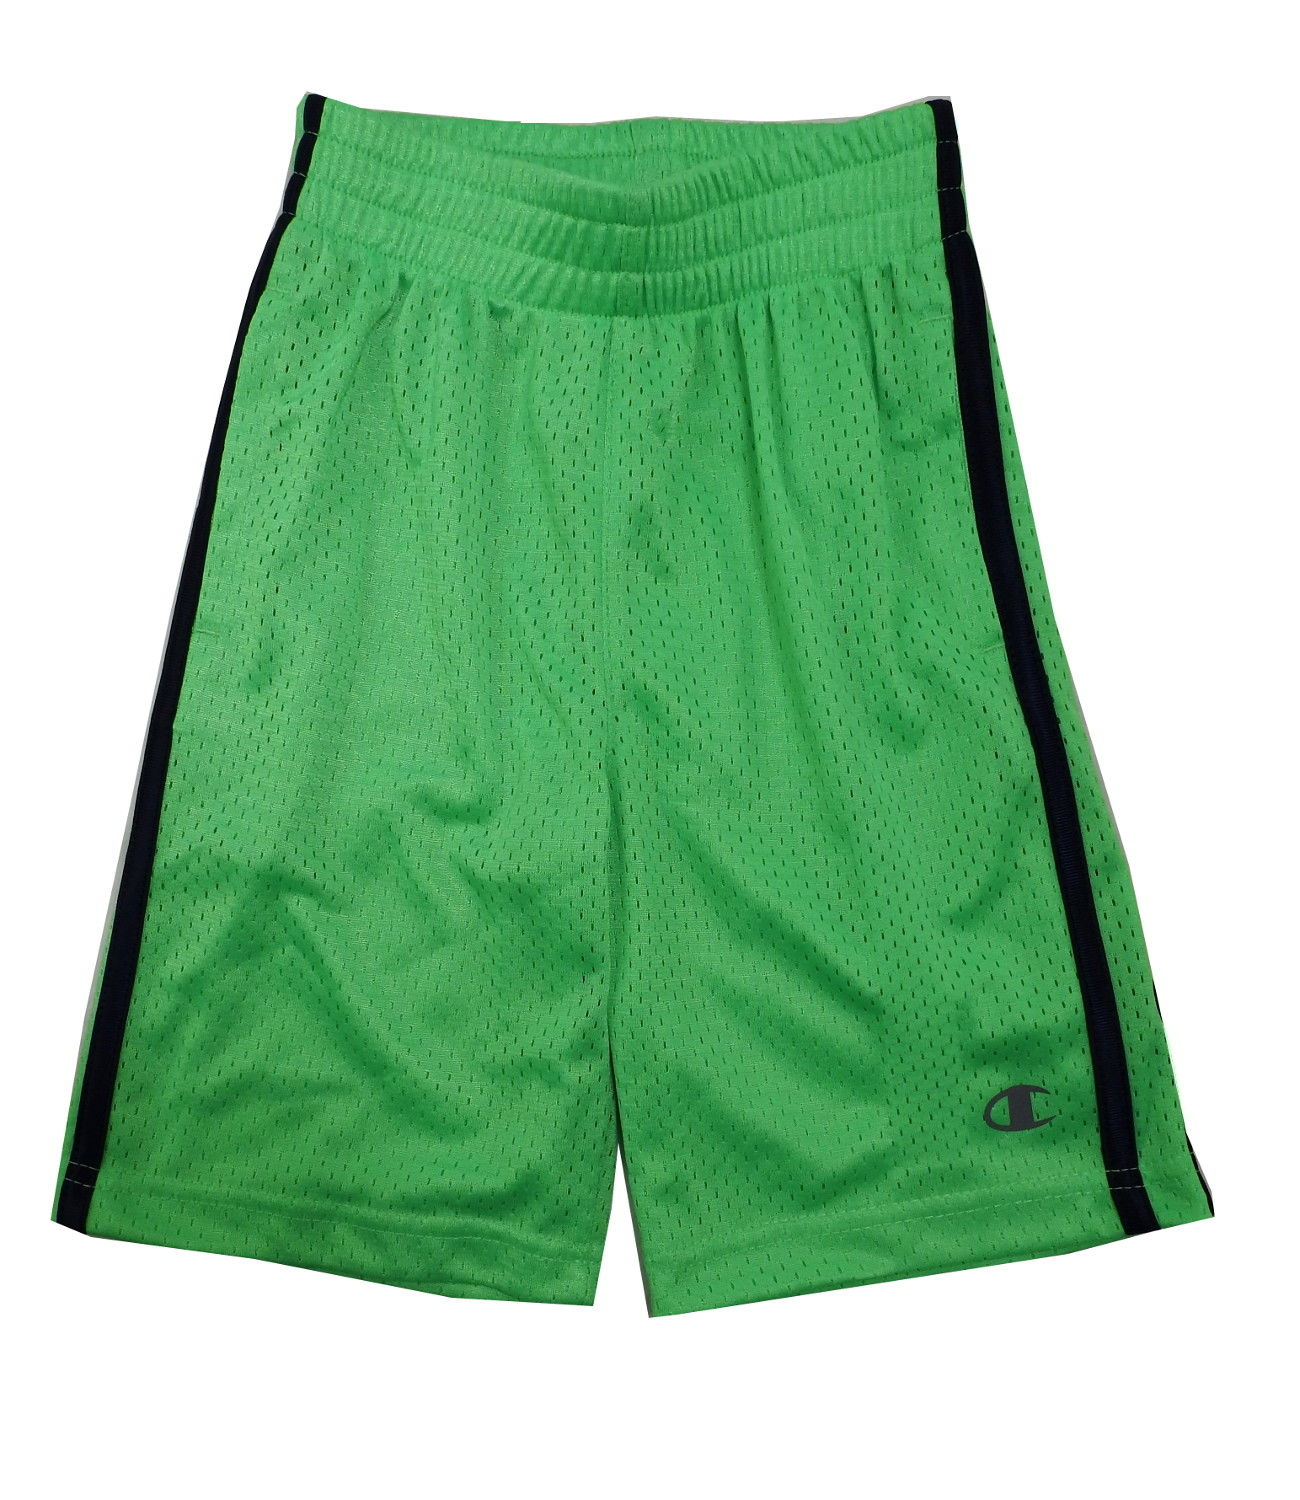 c0f62a5752b204 Details about Champion Boys Size 4 Authentic Athletic Mesh Shorts